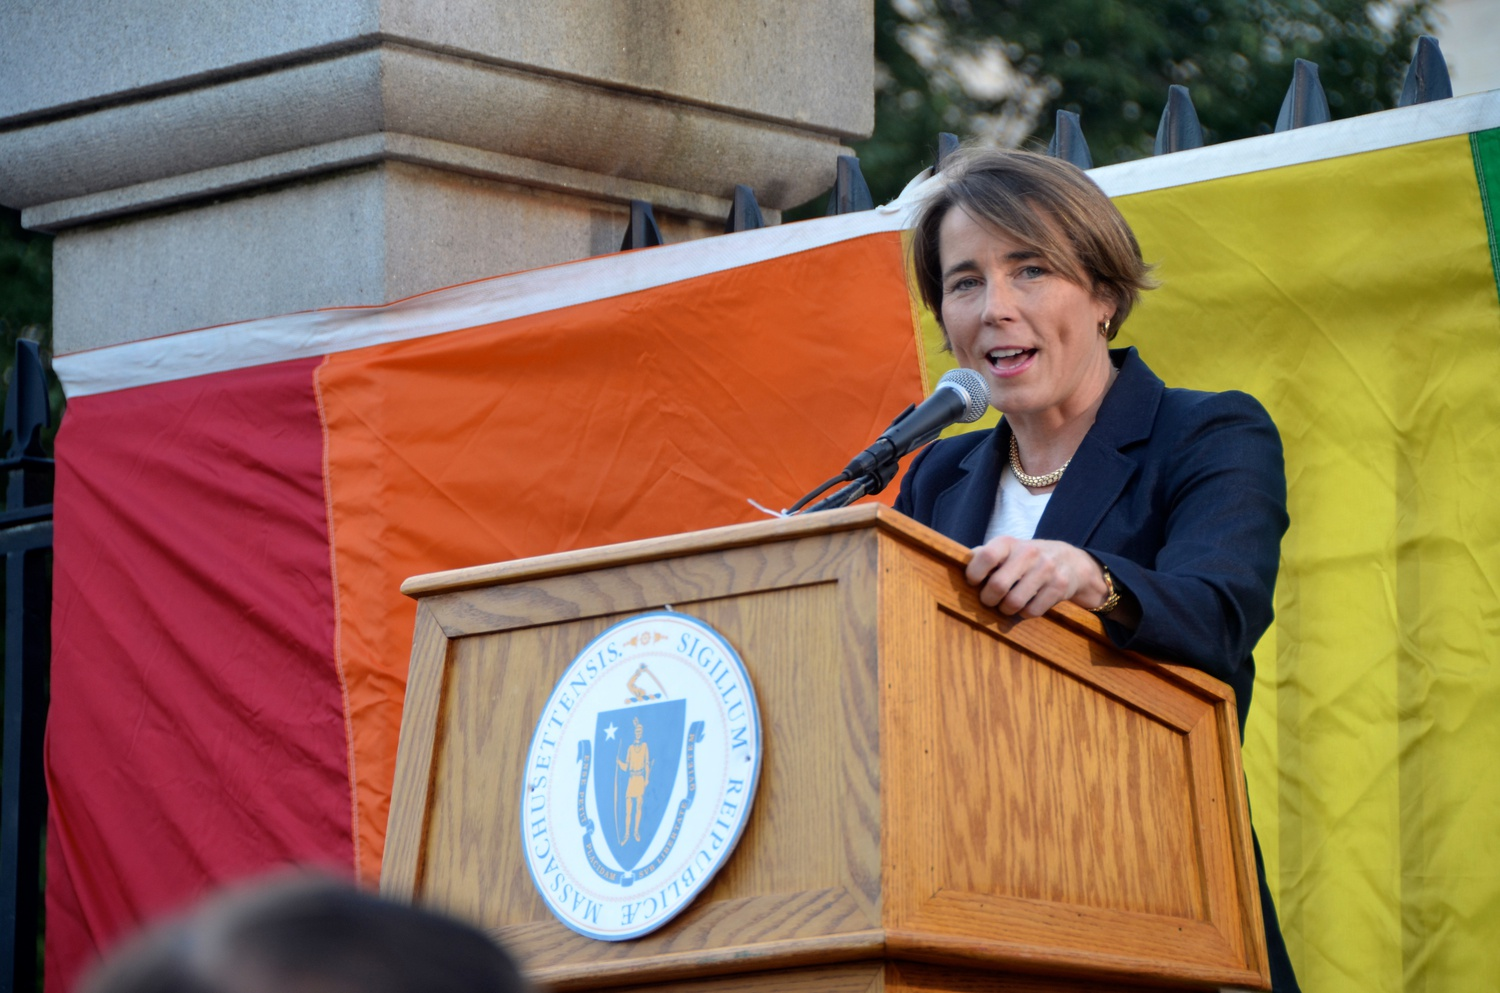 Divestment activists are asking Massachusetts Attorney General Maura T. Healey '92 to launch a formal review into Harvard's investments.